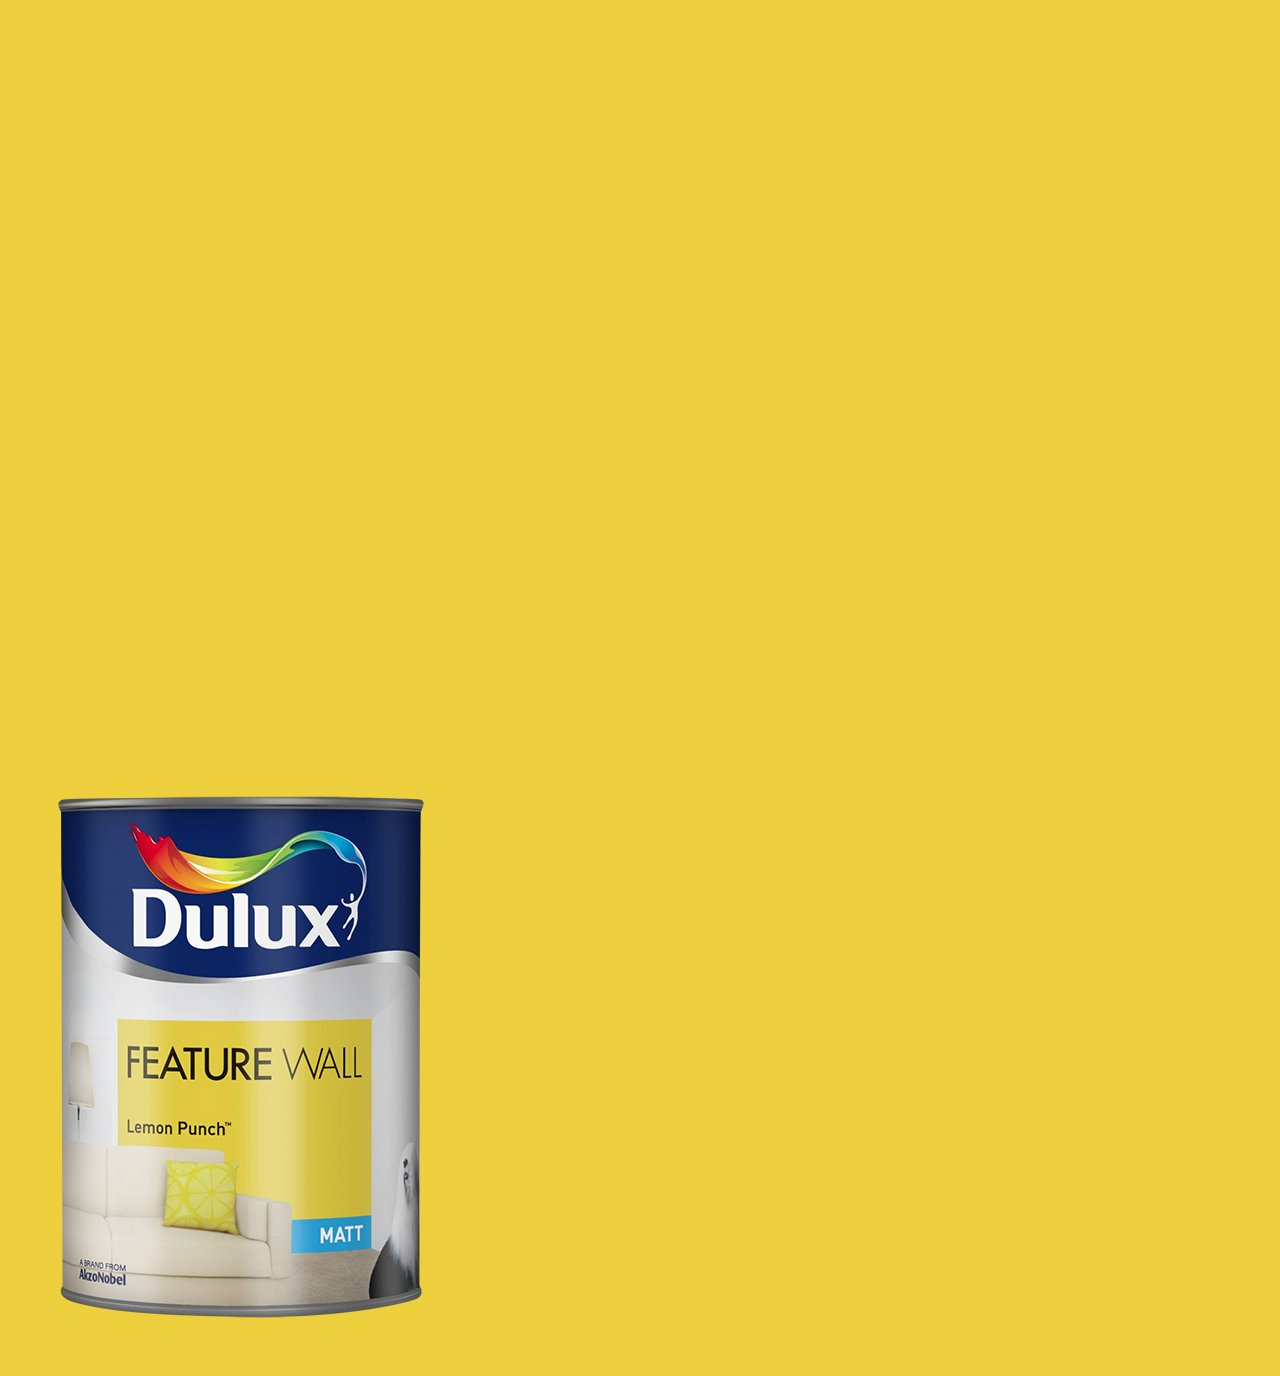 Dulux Matt Paint for Walls Feature, 1.25 L - Lemon Punch: Amazon.co ...